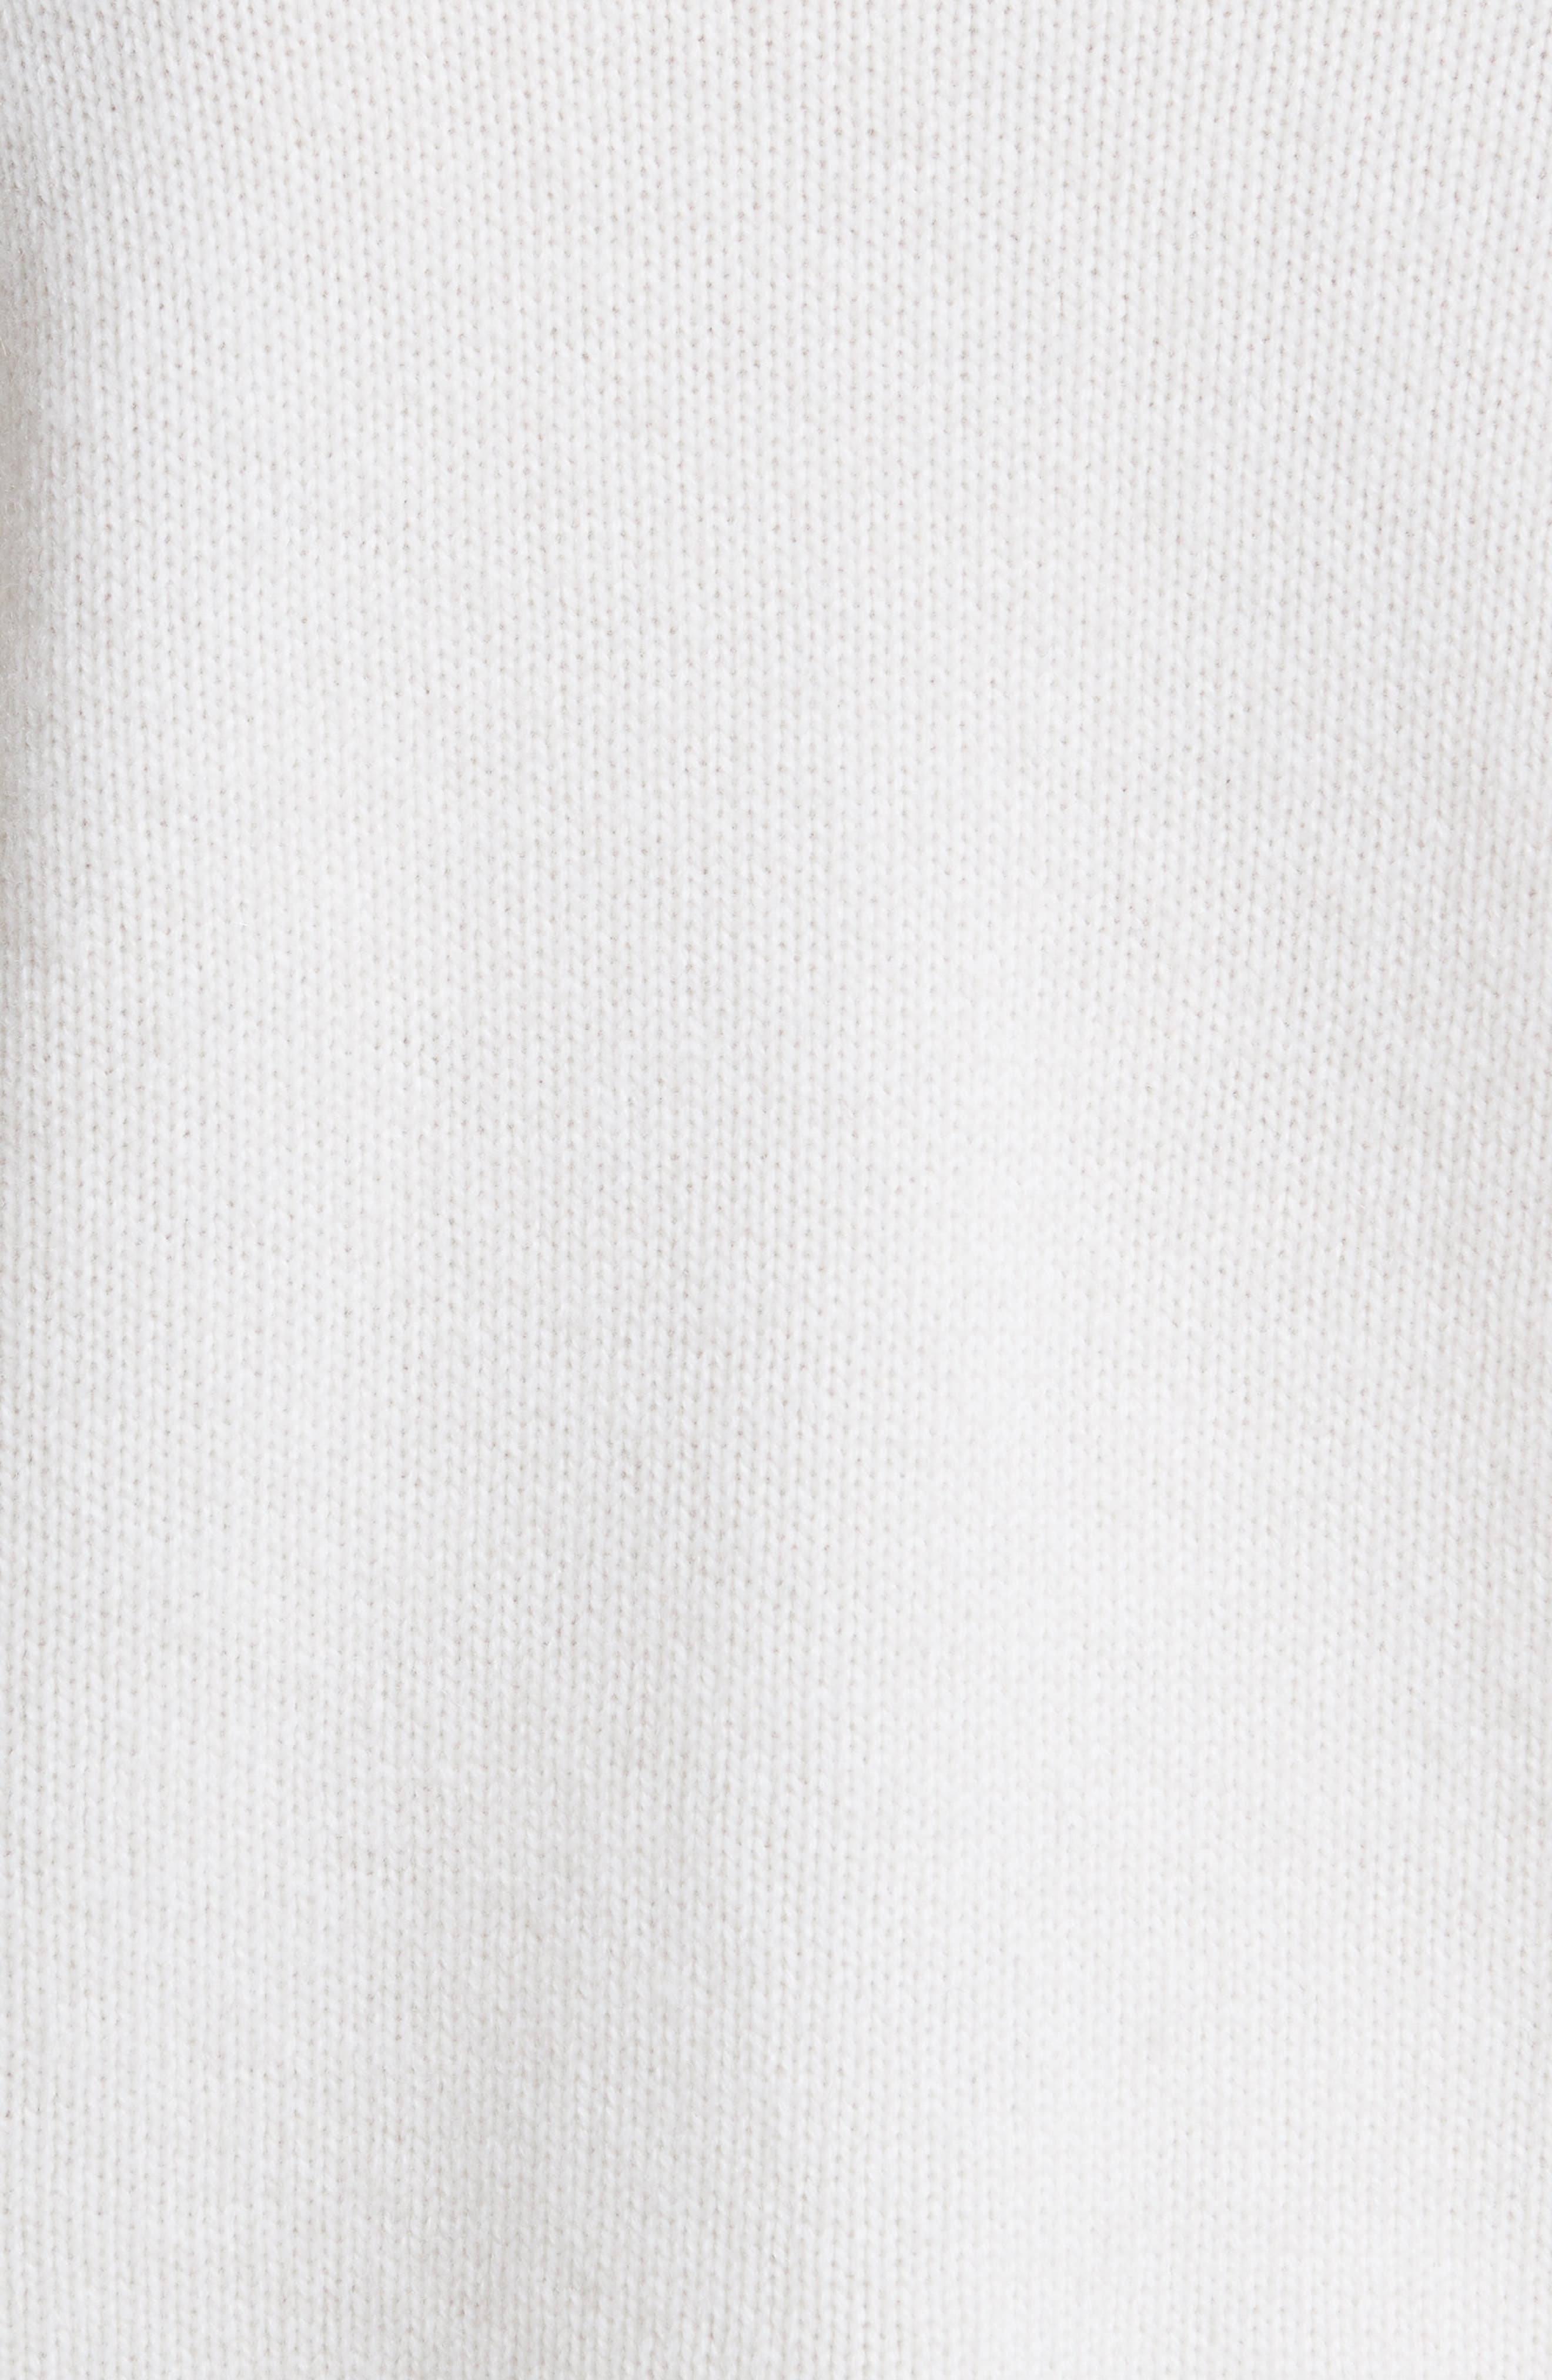 Imitation Pearl Embellished Wool & Cashmere Sweater,                             Alternate thumbnail 6, color,                             Ivory